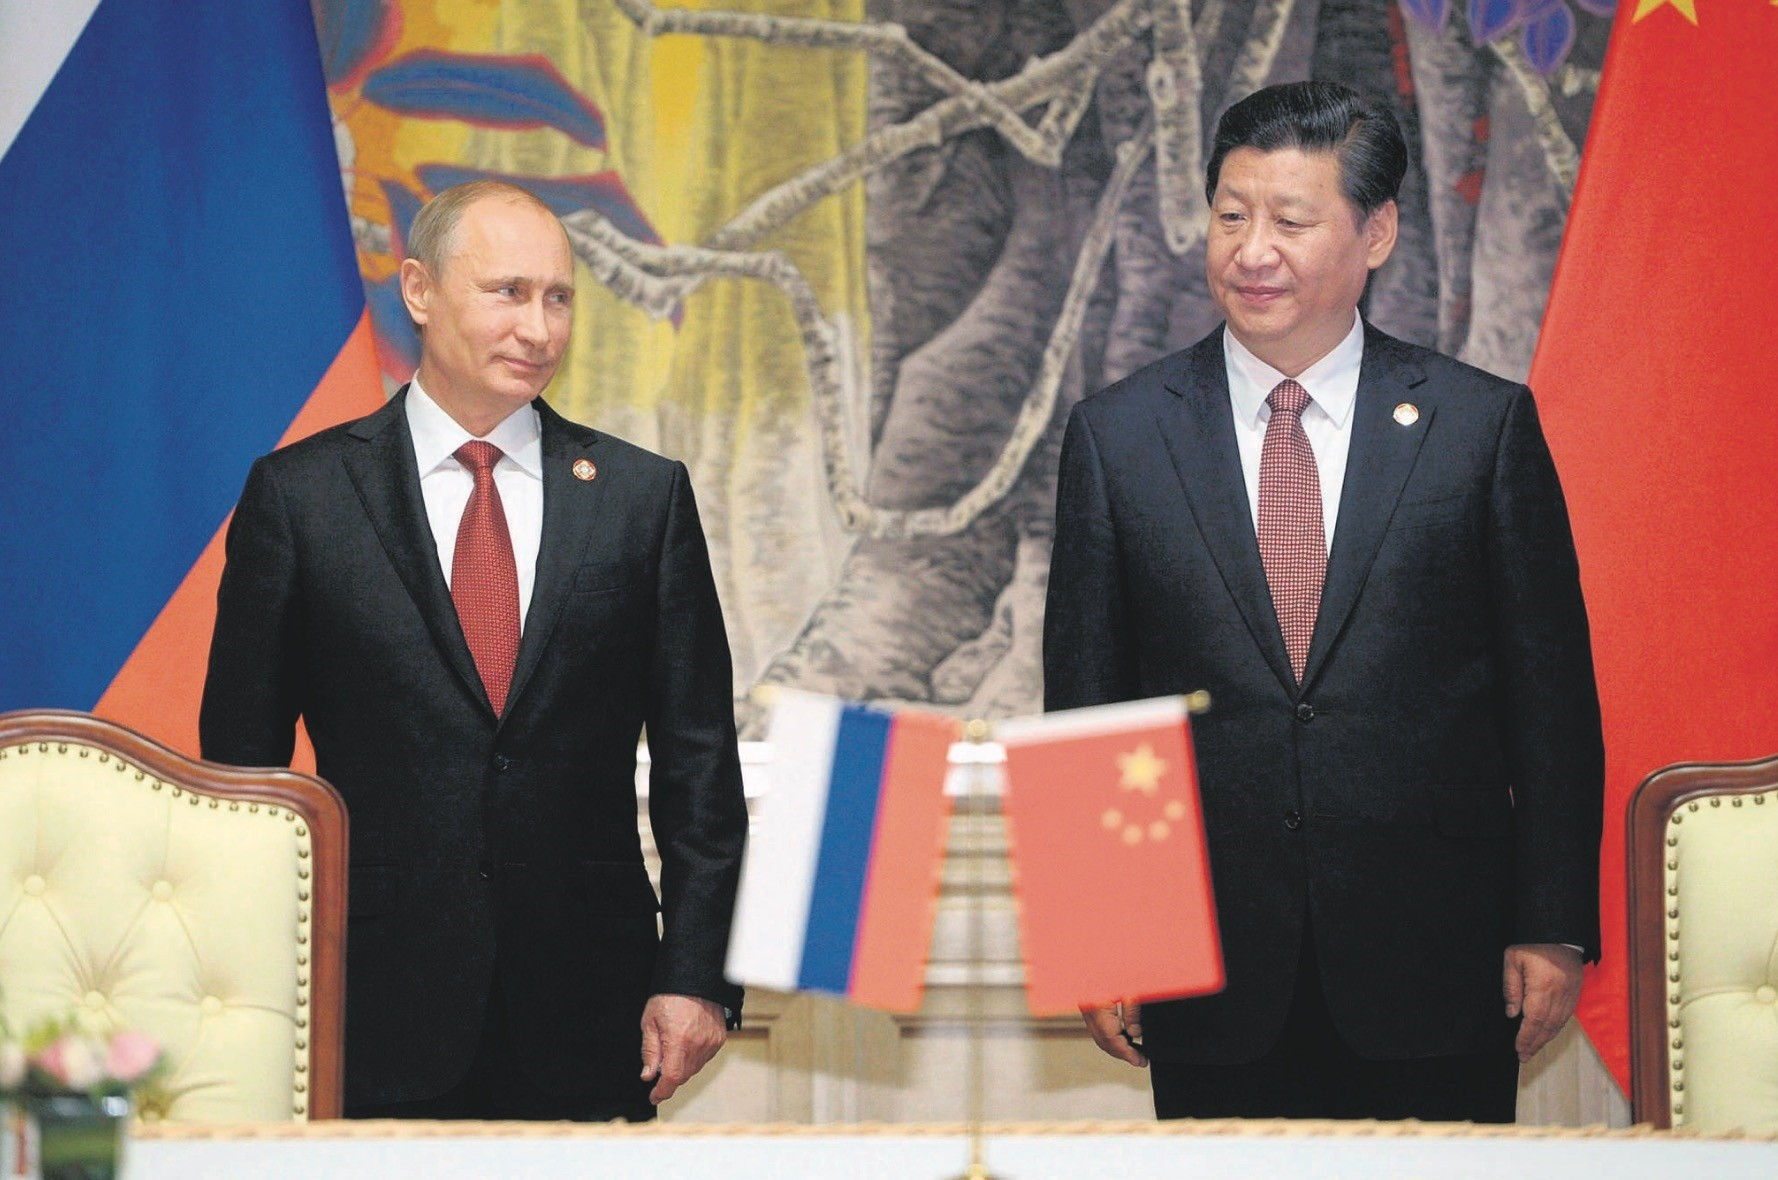 The Chinese president said he hopes for the comprehensive strategic cooperation between Beijing and Moscow to be expanded.